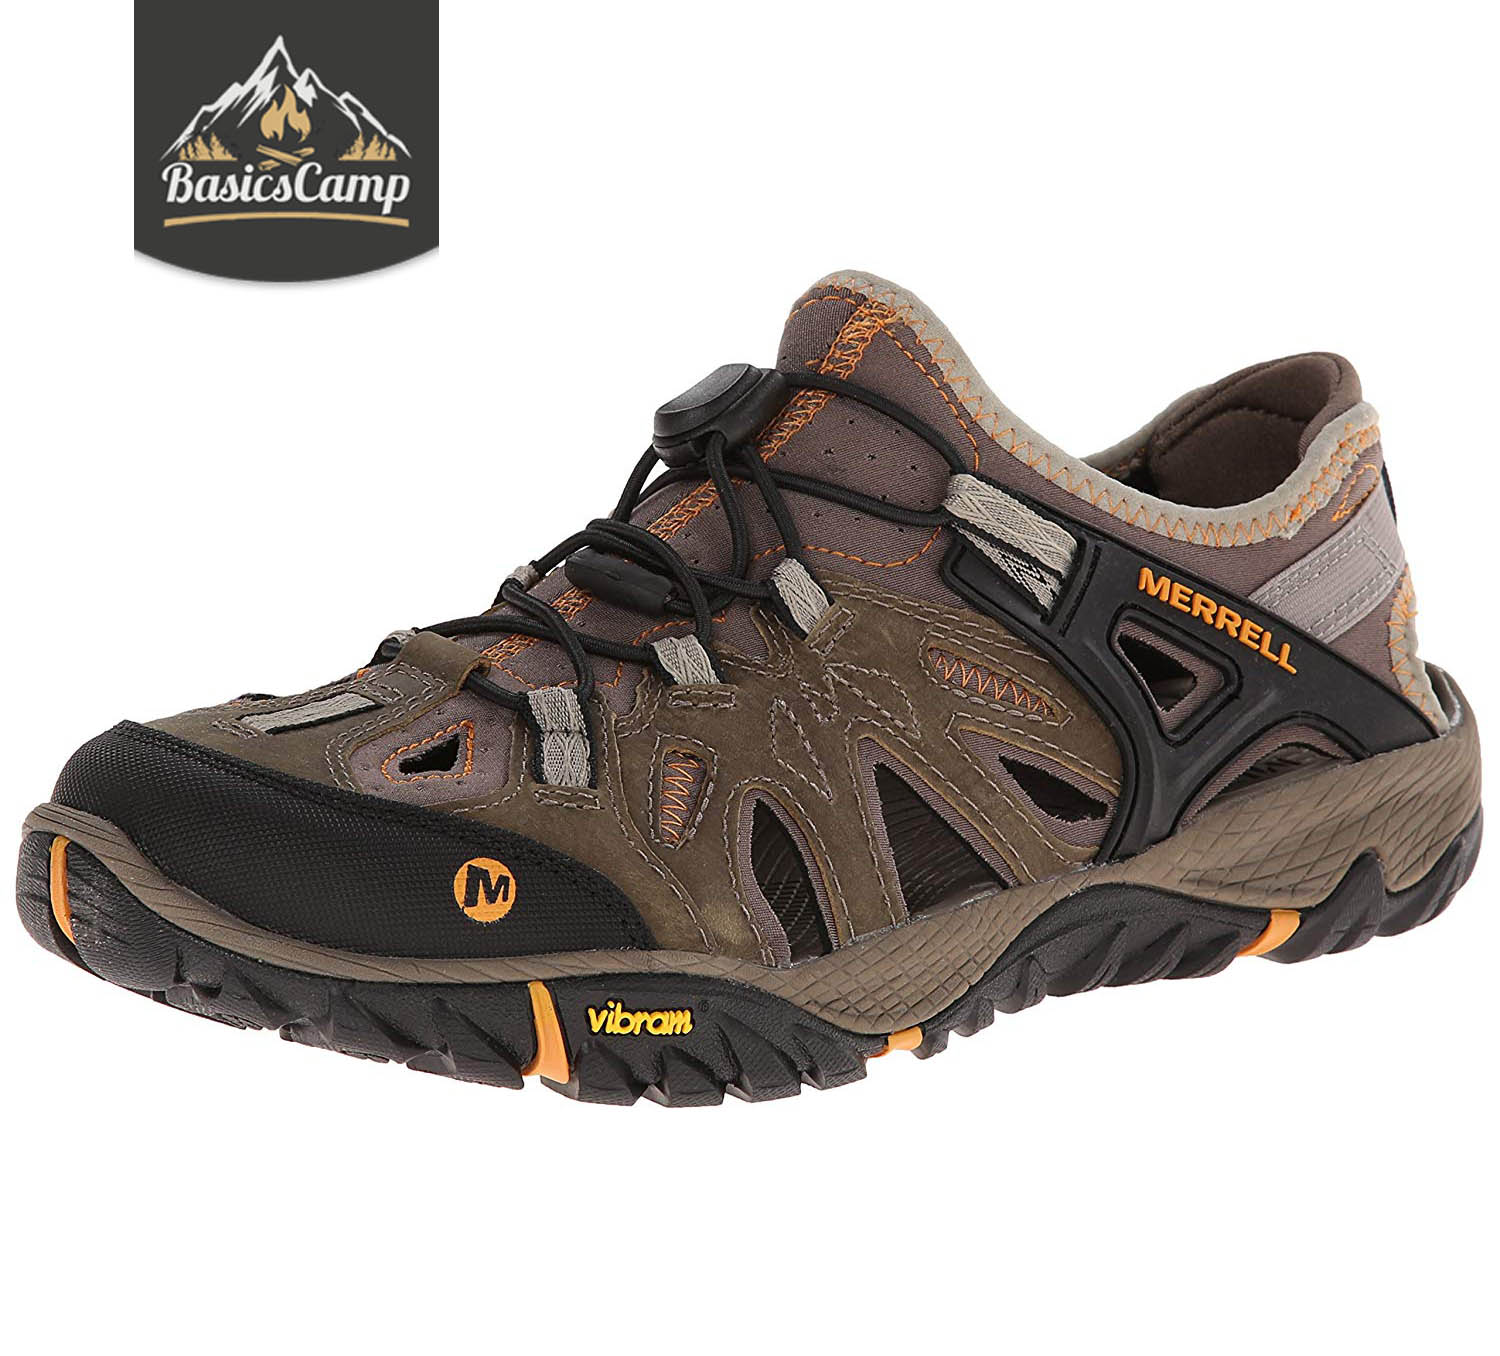 New Merrell All Out Blaze Sieve Men/'s Water Sandal Hiking Shoes Vibram Outsole